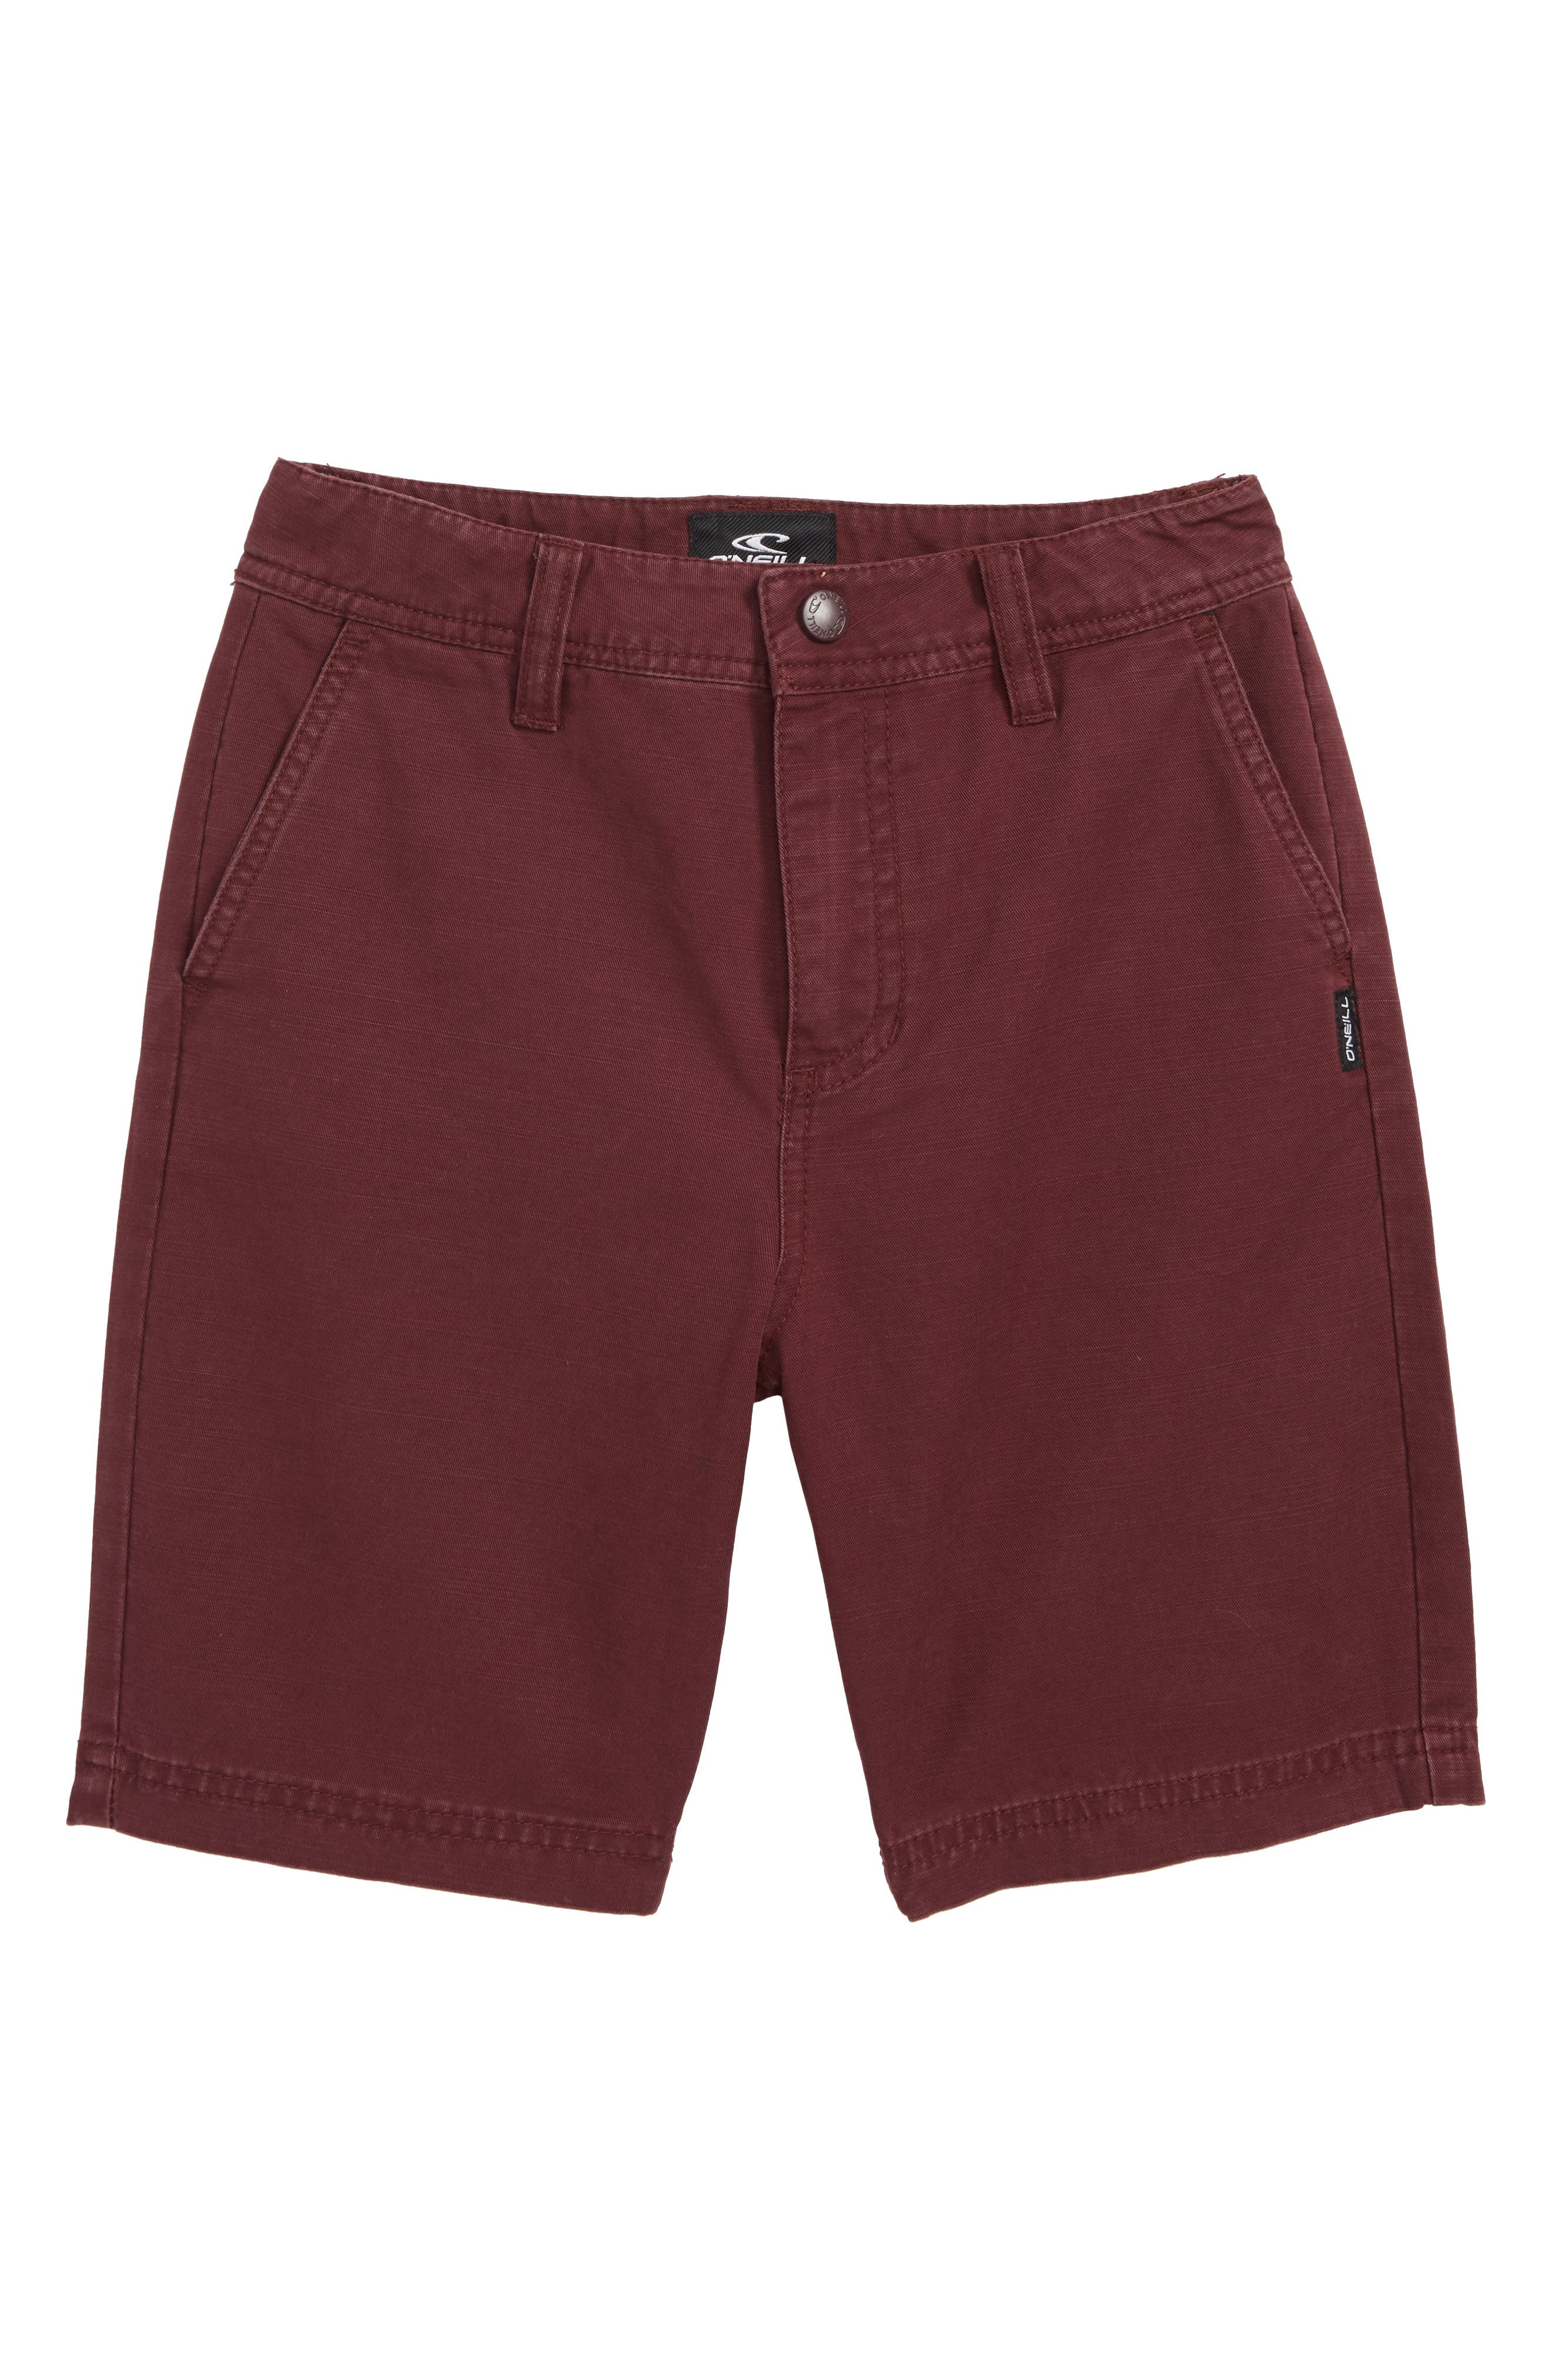 Jay Chino Shorts,                             Main thumbnail 1, color,                             Wine